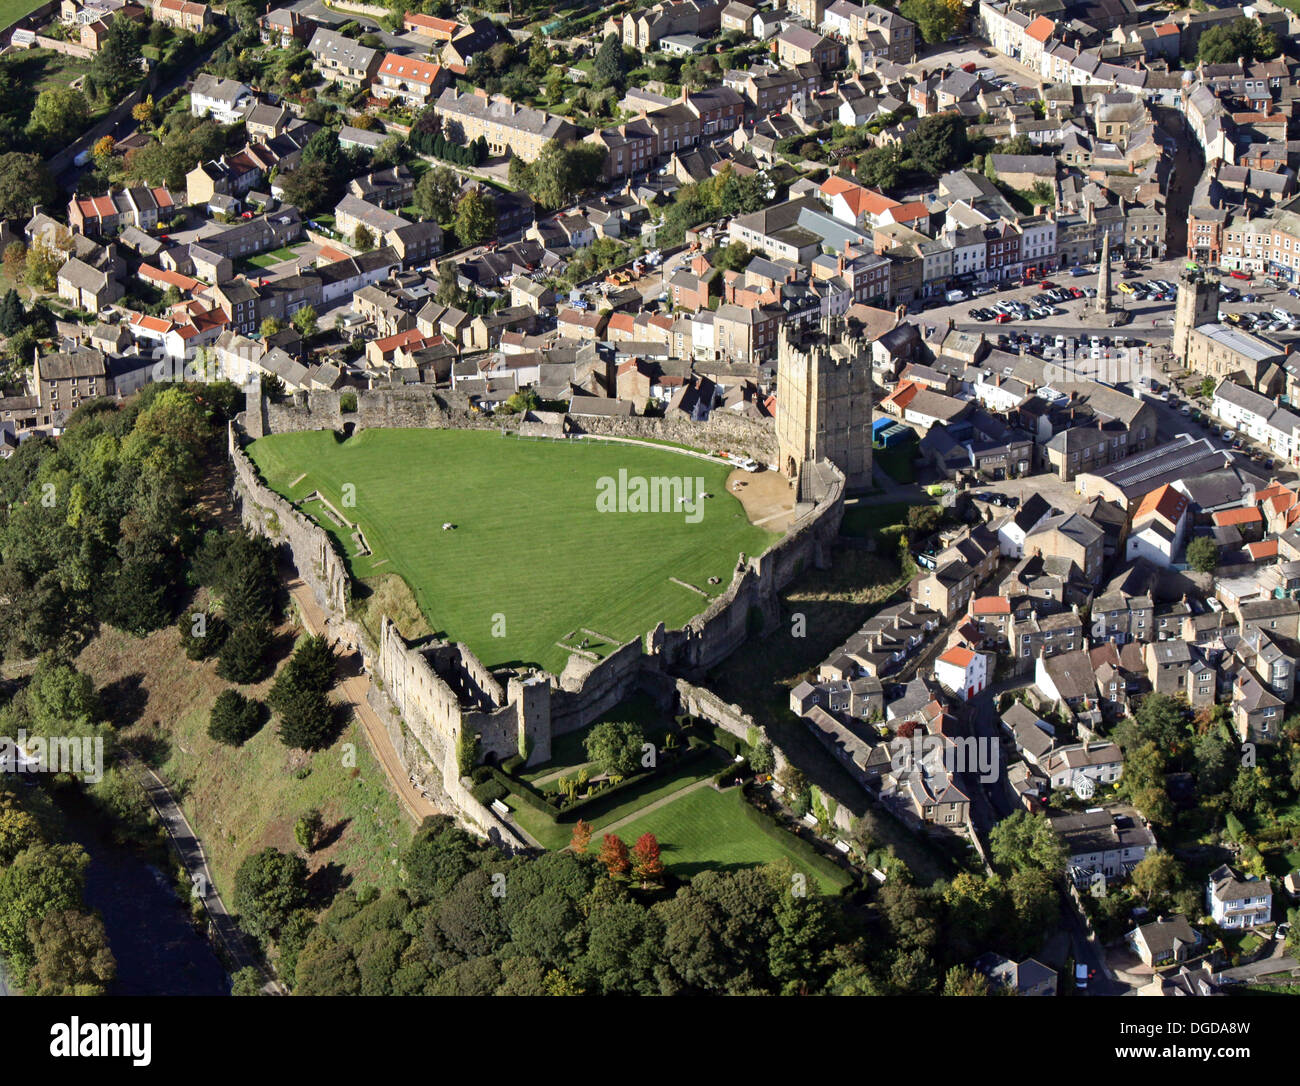 aerial view of Richmond town in North Yorkshire, including the market square and the Castle - Stock Image